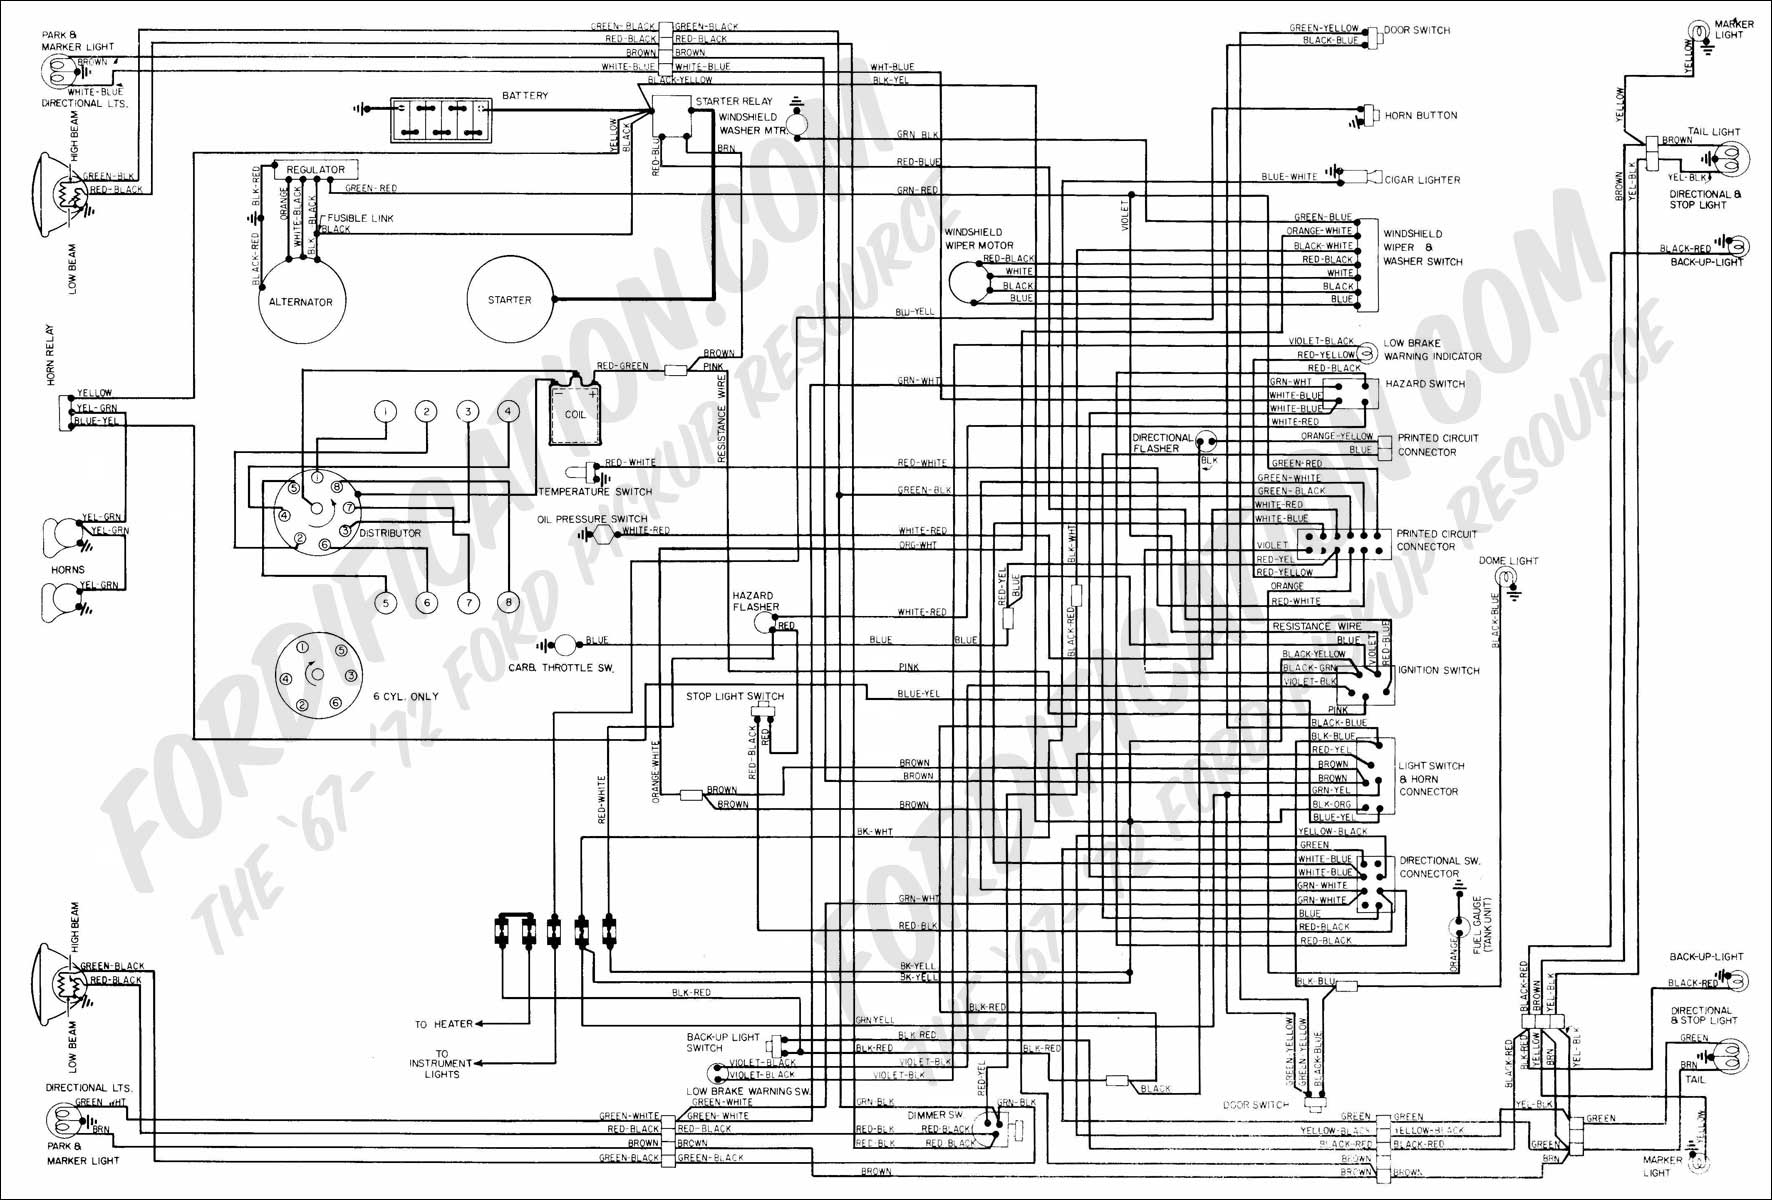 2002 Jeep Grand Cherokee Rear Differential Schematic in addition Gm Engine Id By Vin as well Keeps Blowing 7 Fuse Driver Side Marker Lights 194478 likewise fordfuseboxdiagram furthermore 5h5hx 90 F150 Months Ago Wouldn T Start. on 2006 jeep grand cherokee stereo wiring diagram